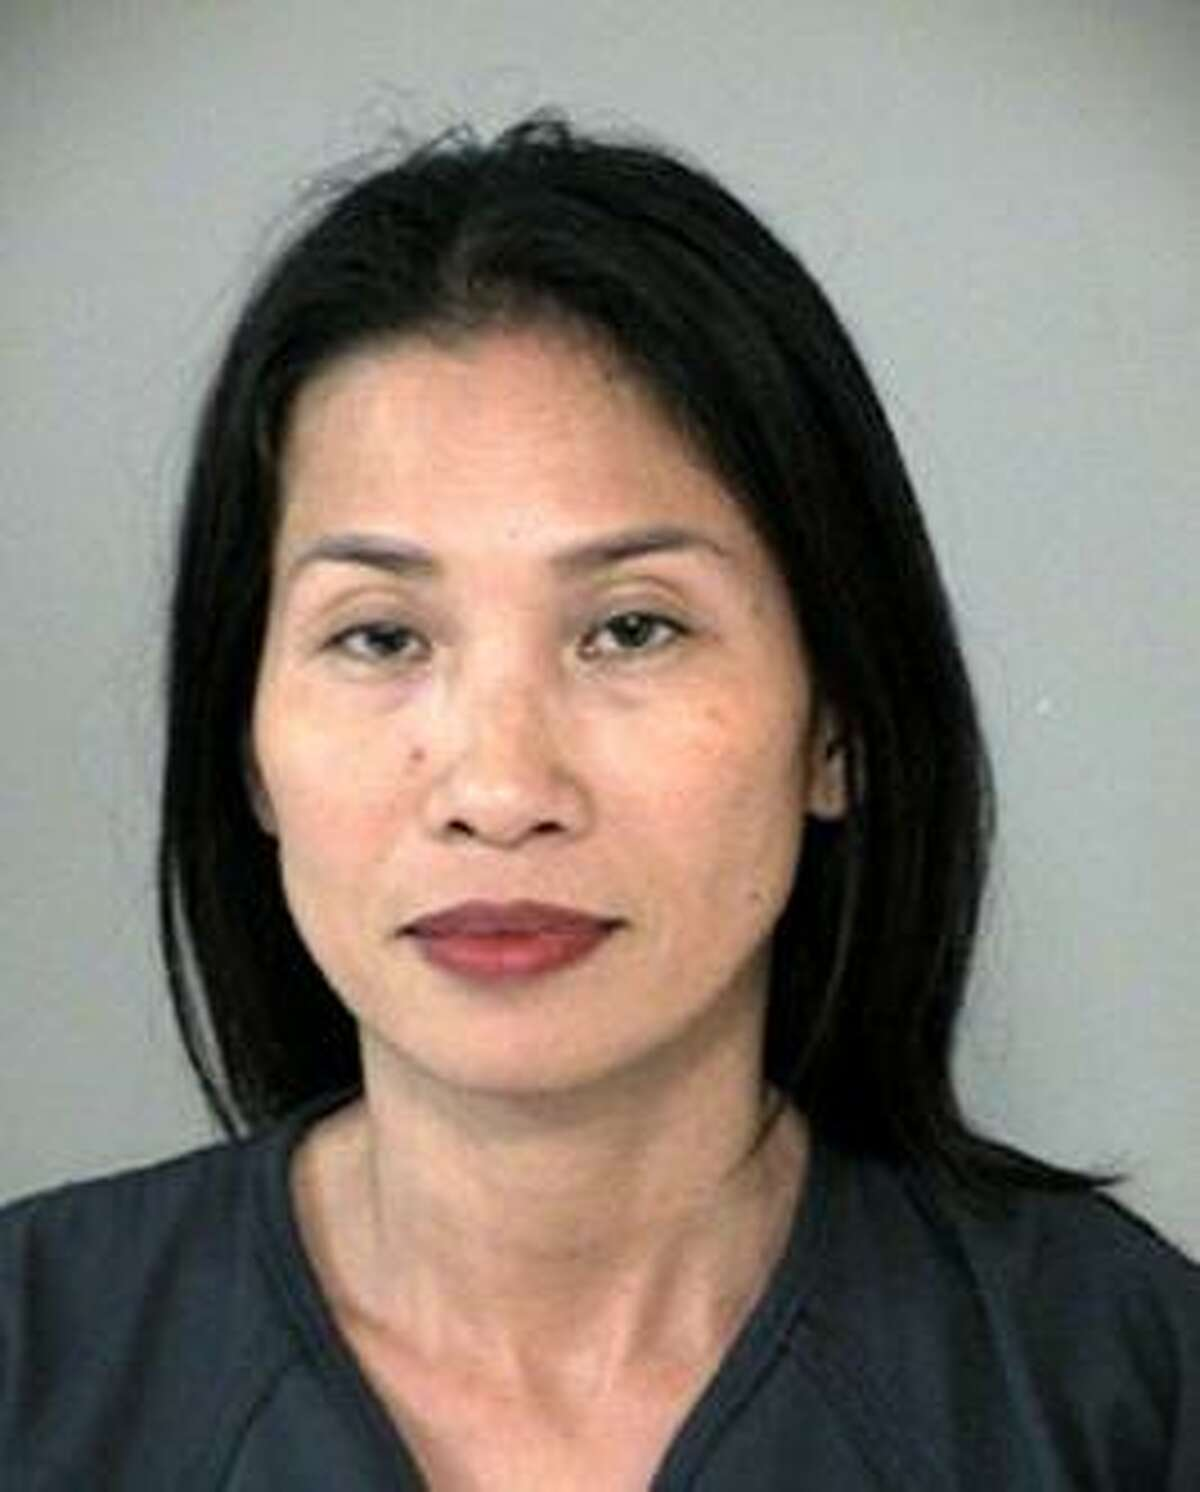 Nga Thi Nguyen, 47, has been arrested and charged with felony theft of property between $150,000 and $300,000.